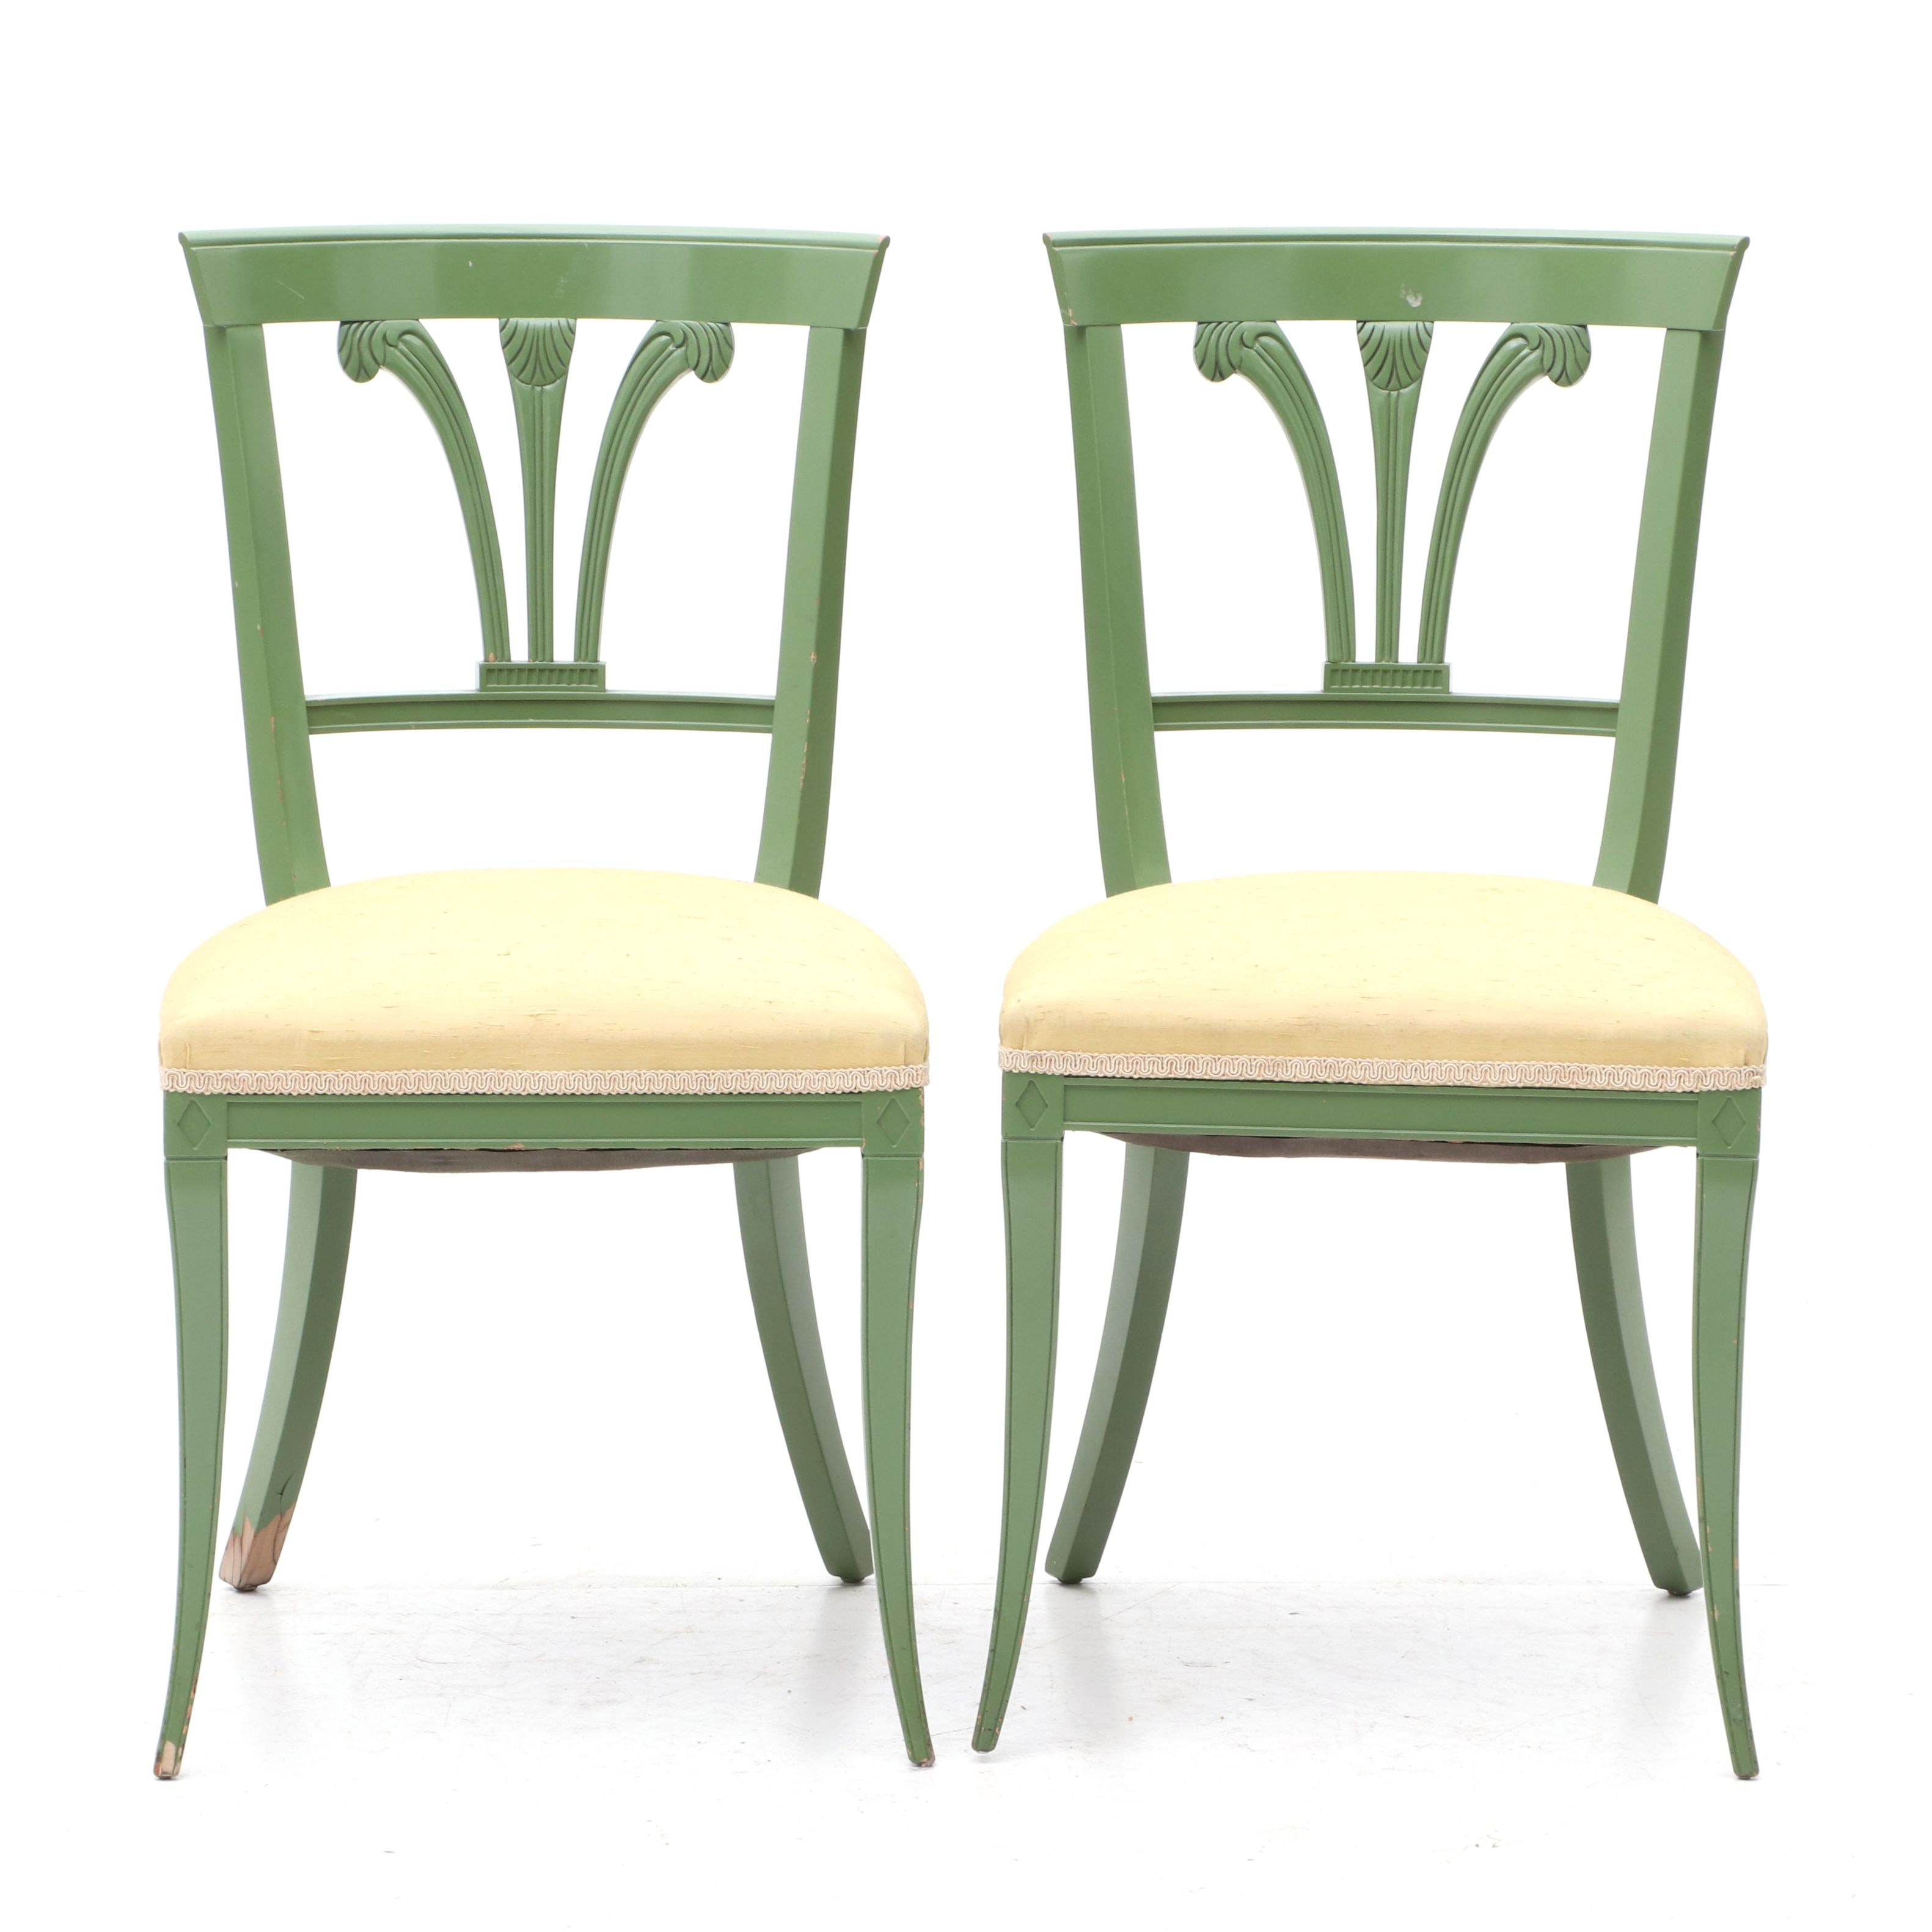 Biedermeier Style Painted Wood Side Chairs, Mid-20th Century